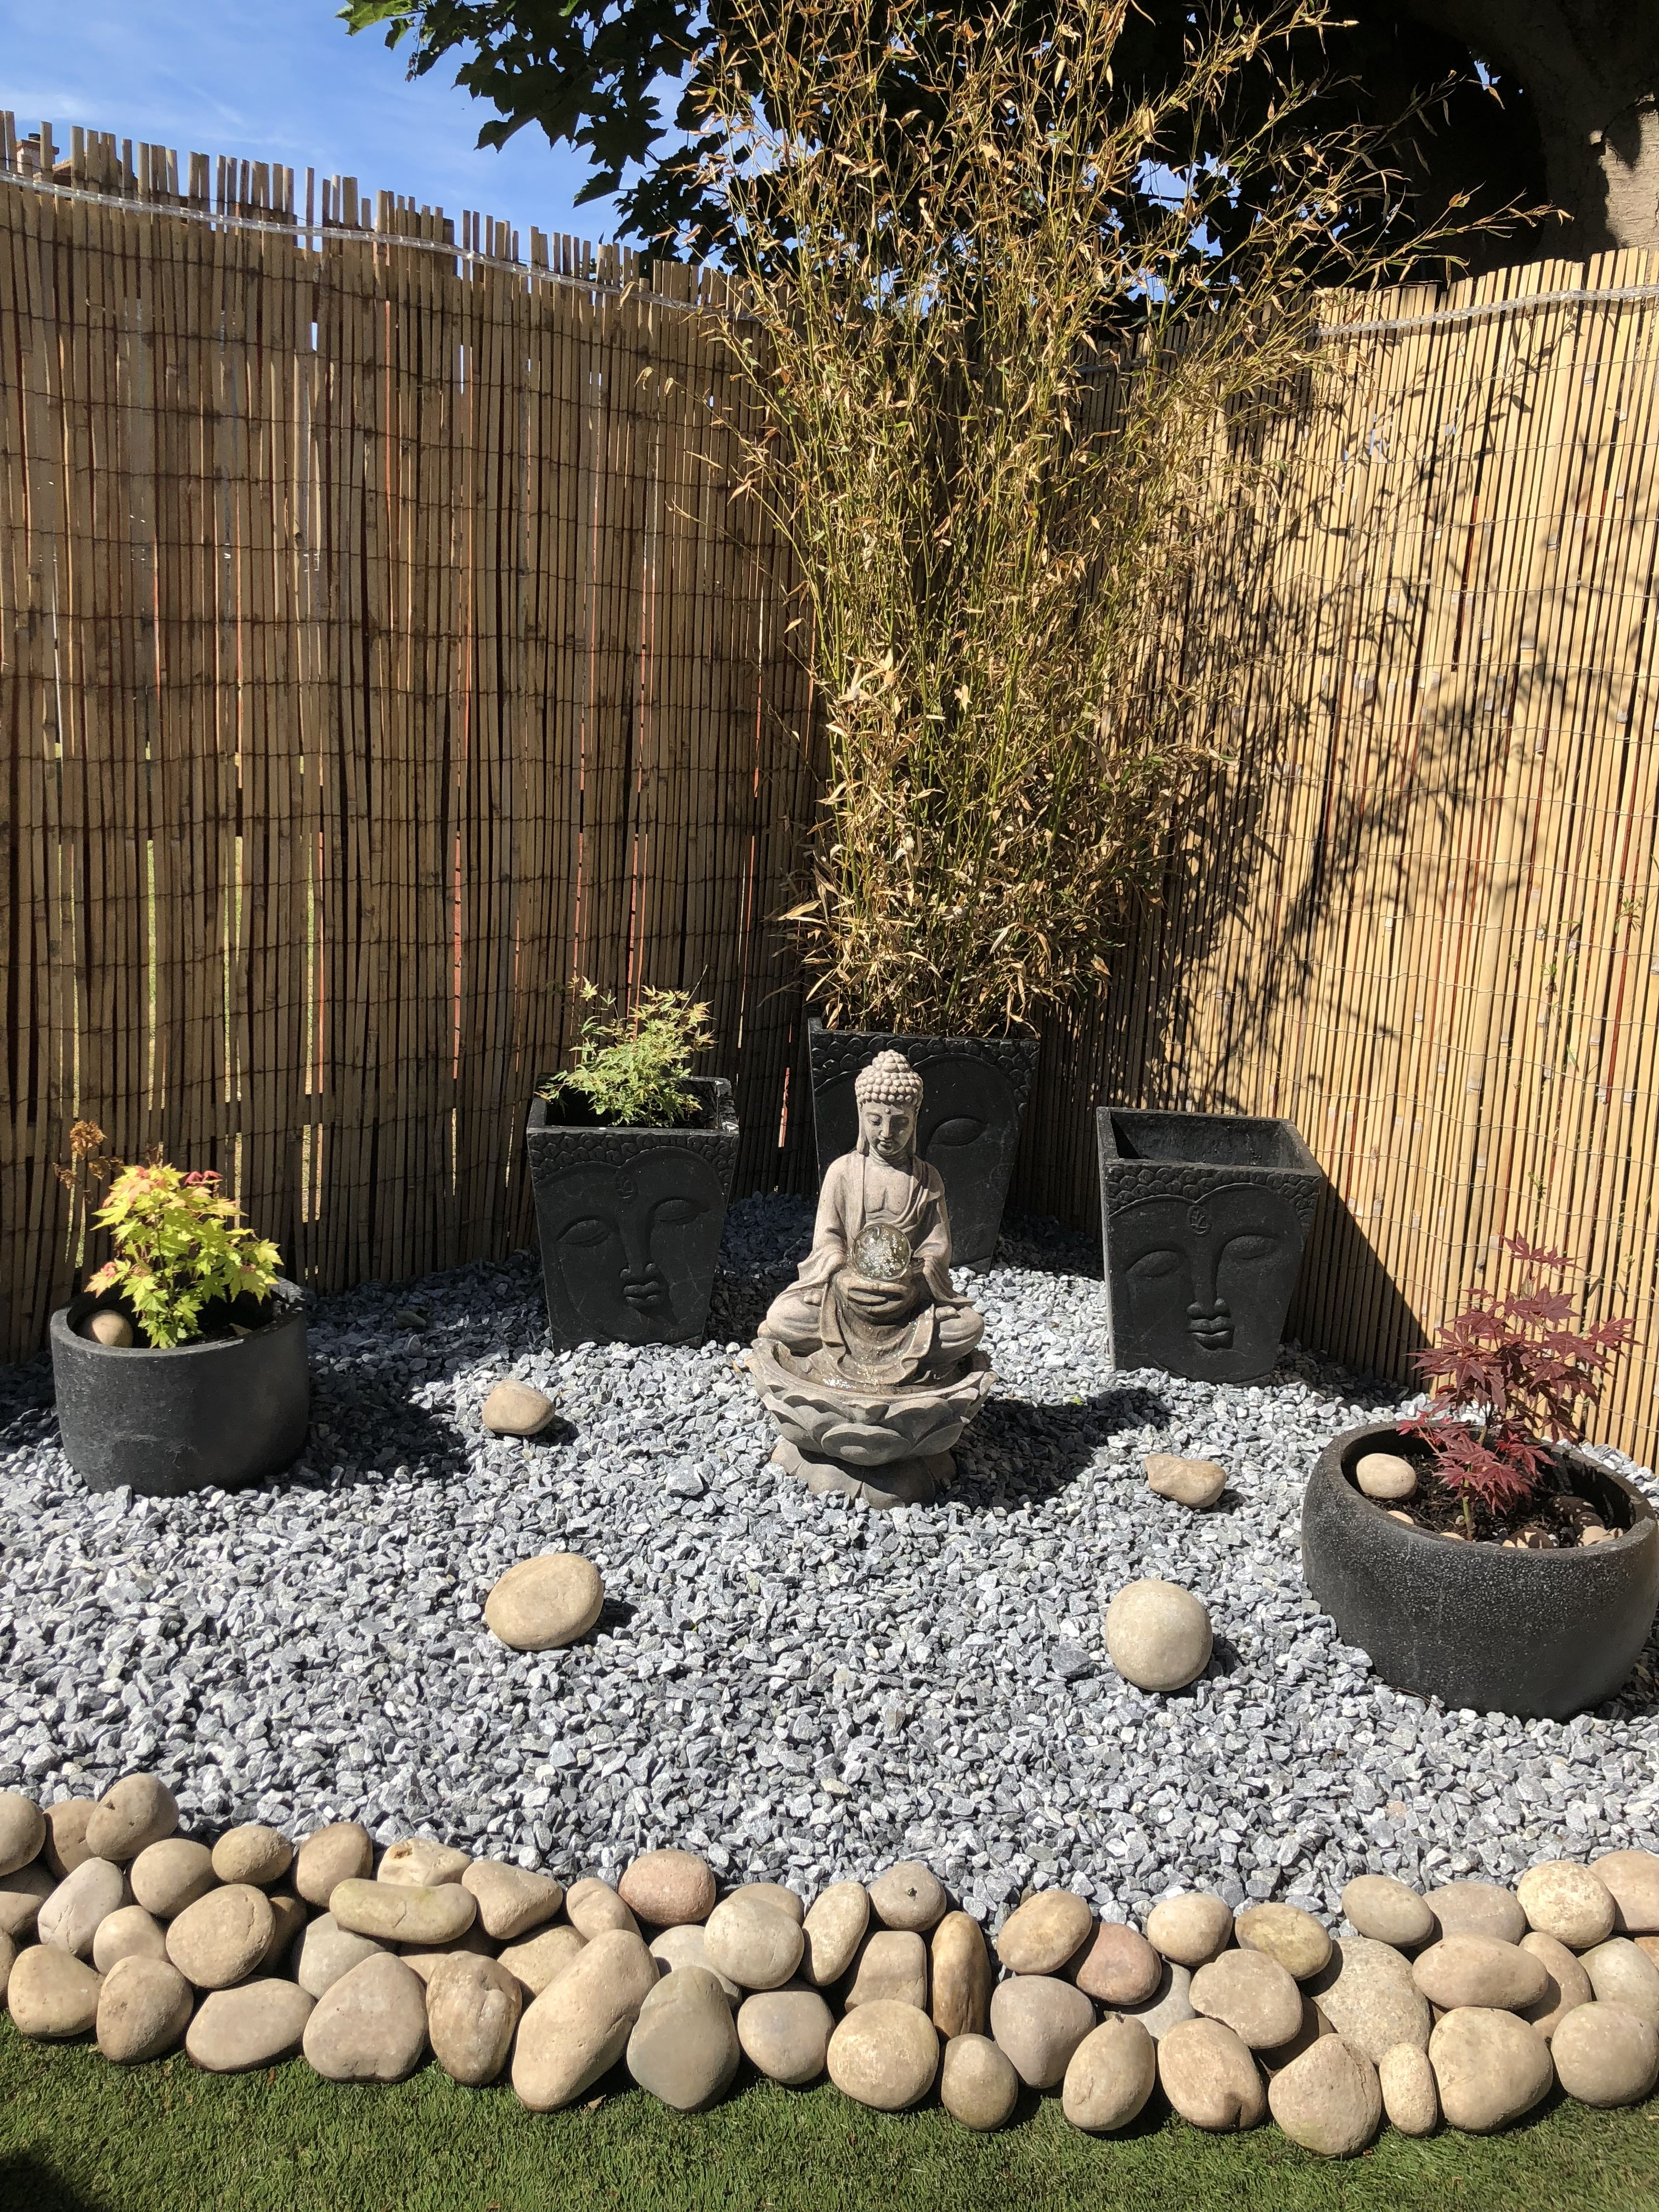 Meditation garden image by CATHERINE HENRICKS on zen | Zen ... on Meditation Patio Ideas  id=74353